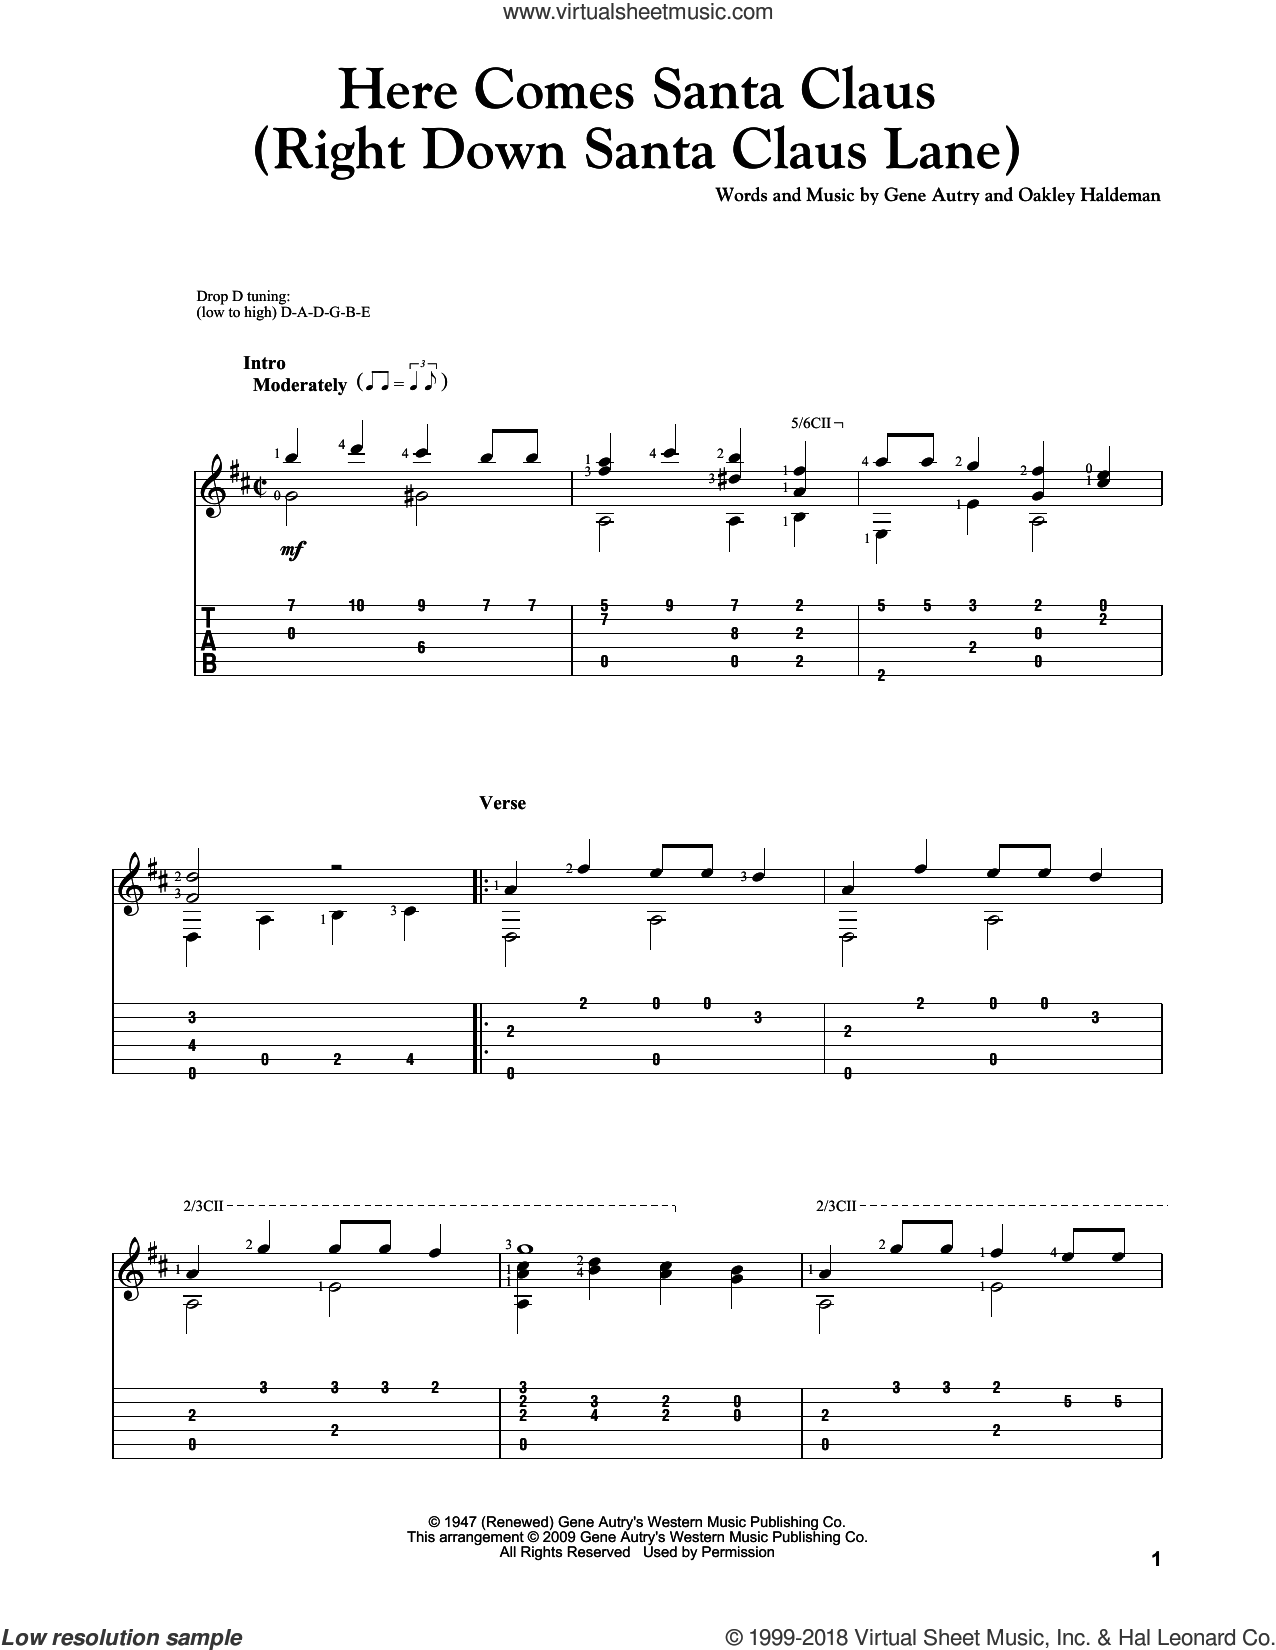 Here Comes Santa Claus (Right Down Santa Claus Lane) sheet music for guitar solo by Oakley Haldeman